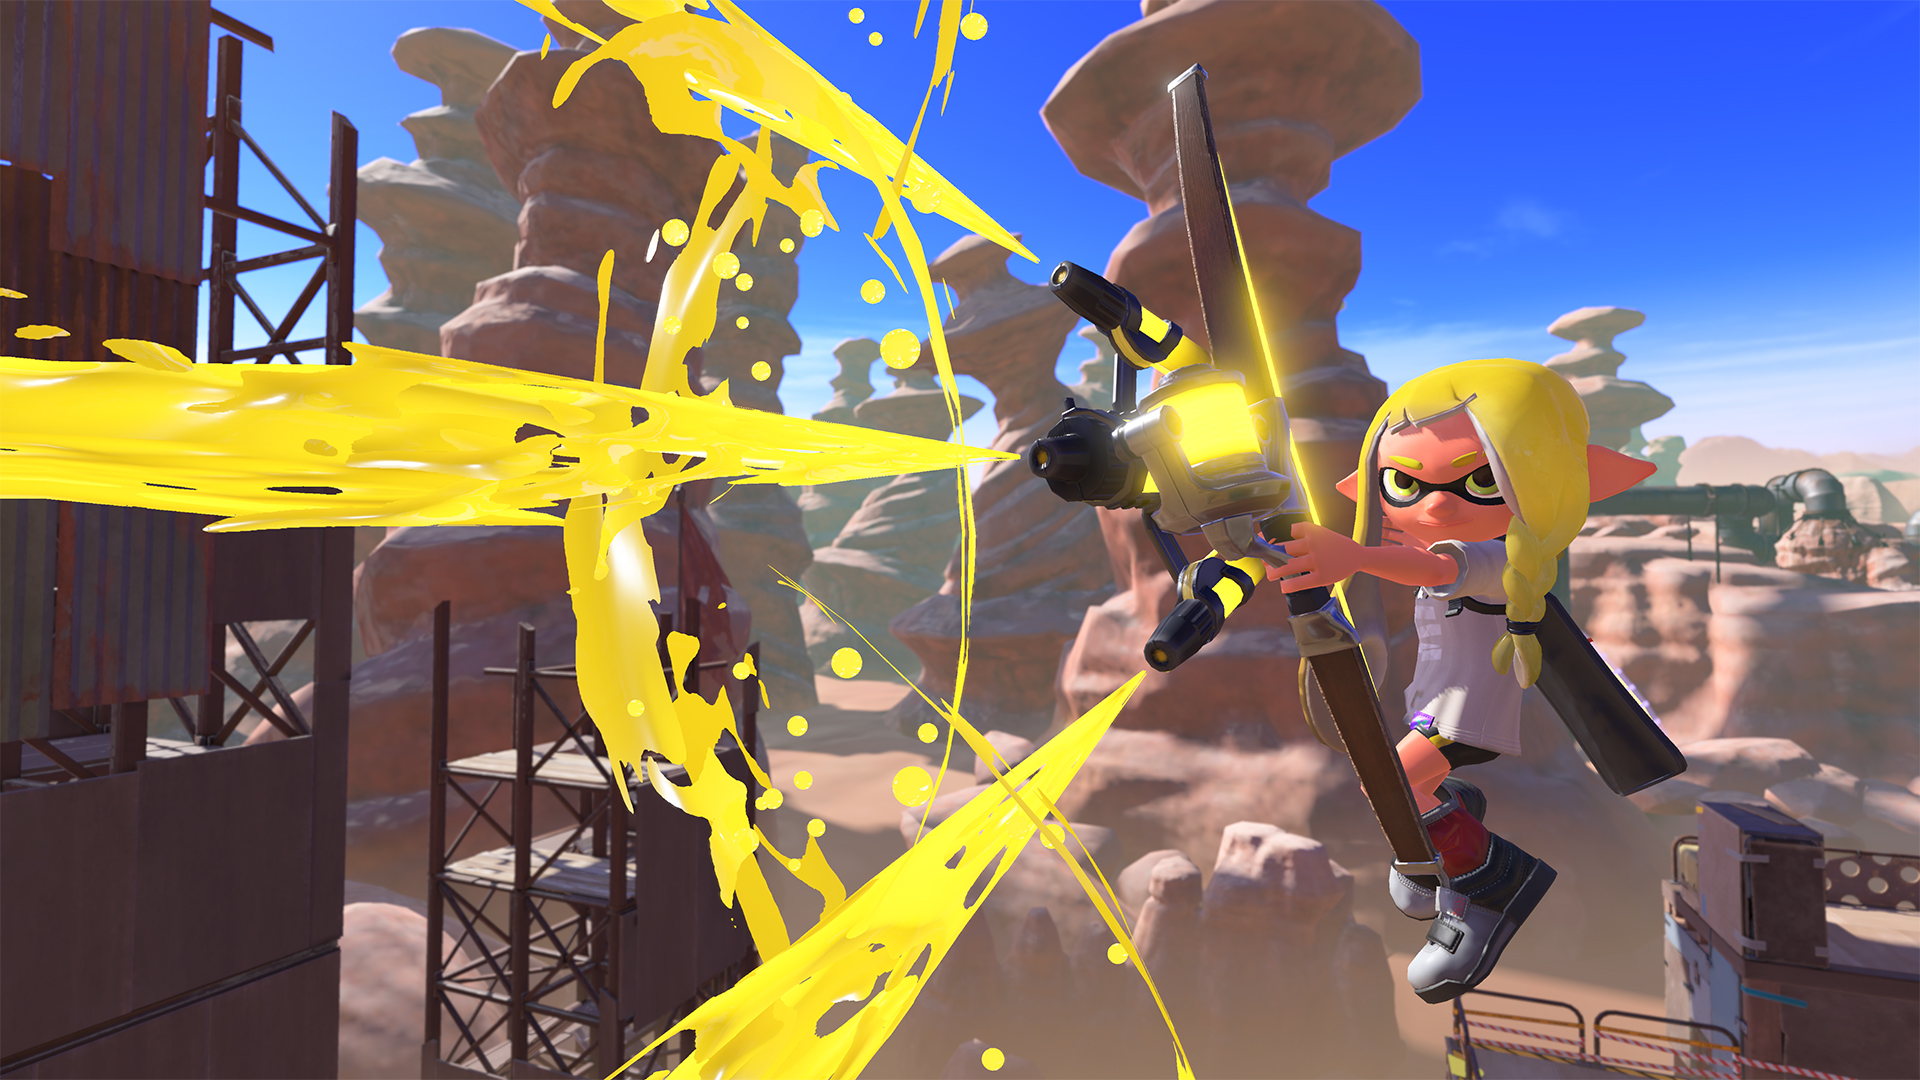 An Inkling fires off a shot from a new crossbow weapon in Splatoon 3